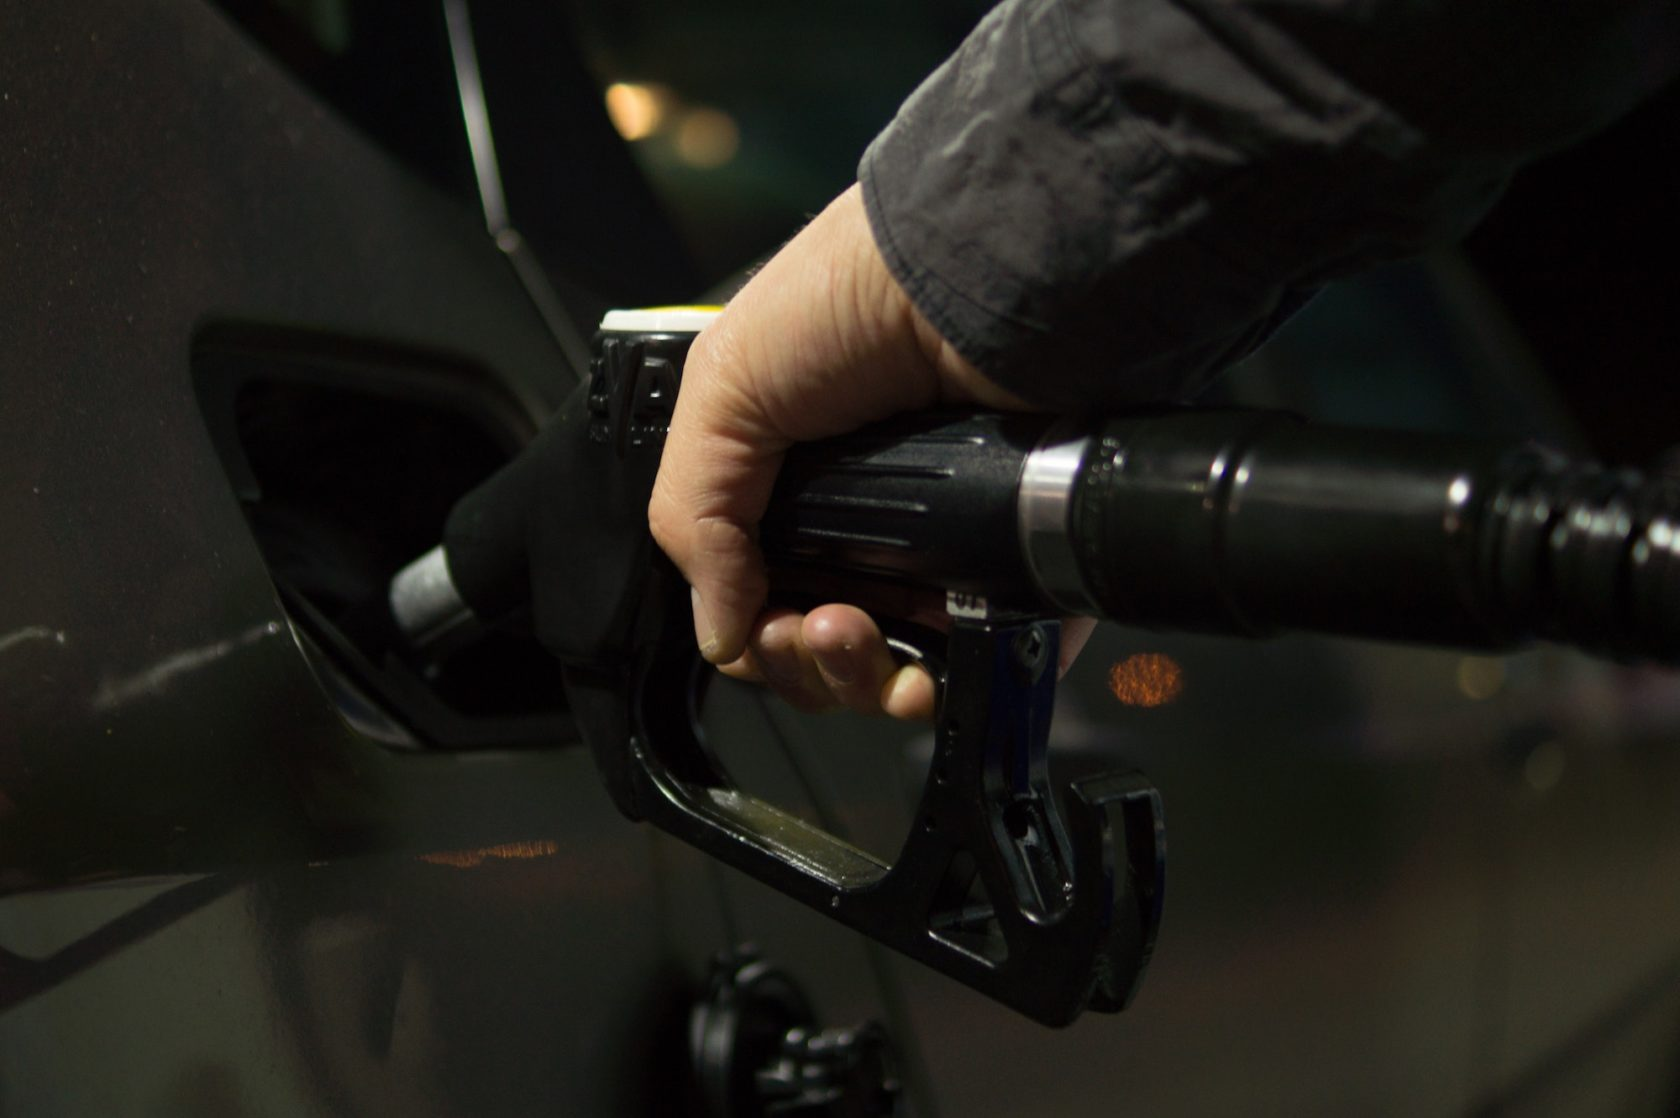 GasBuddy leverages Zendrive data to help drivers save on gas